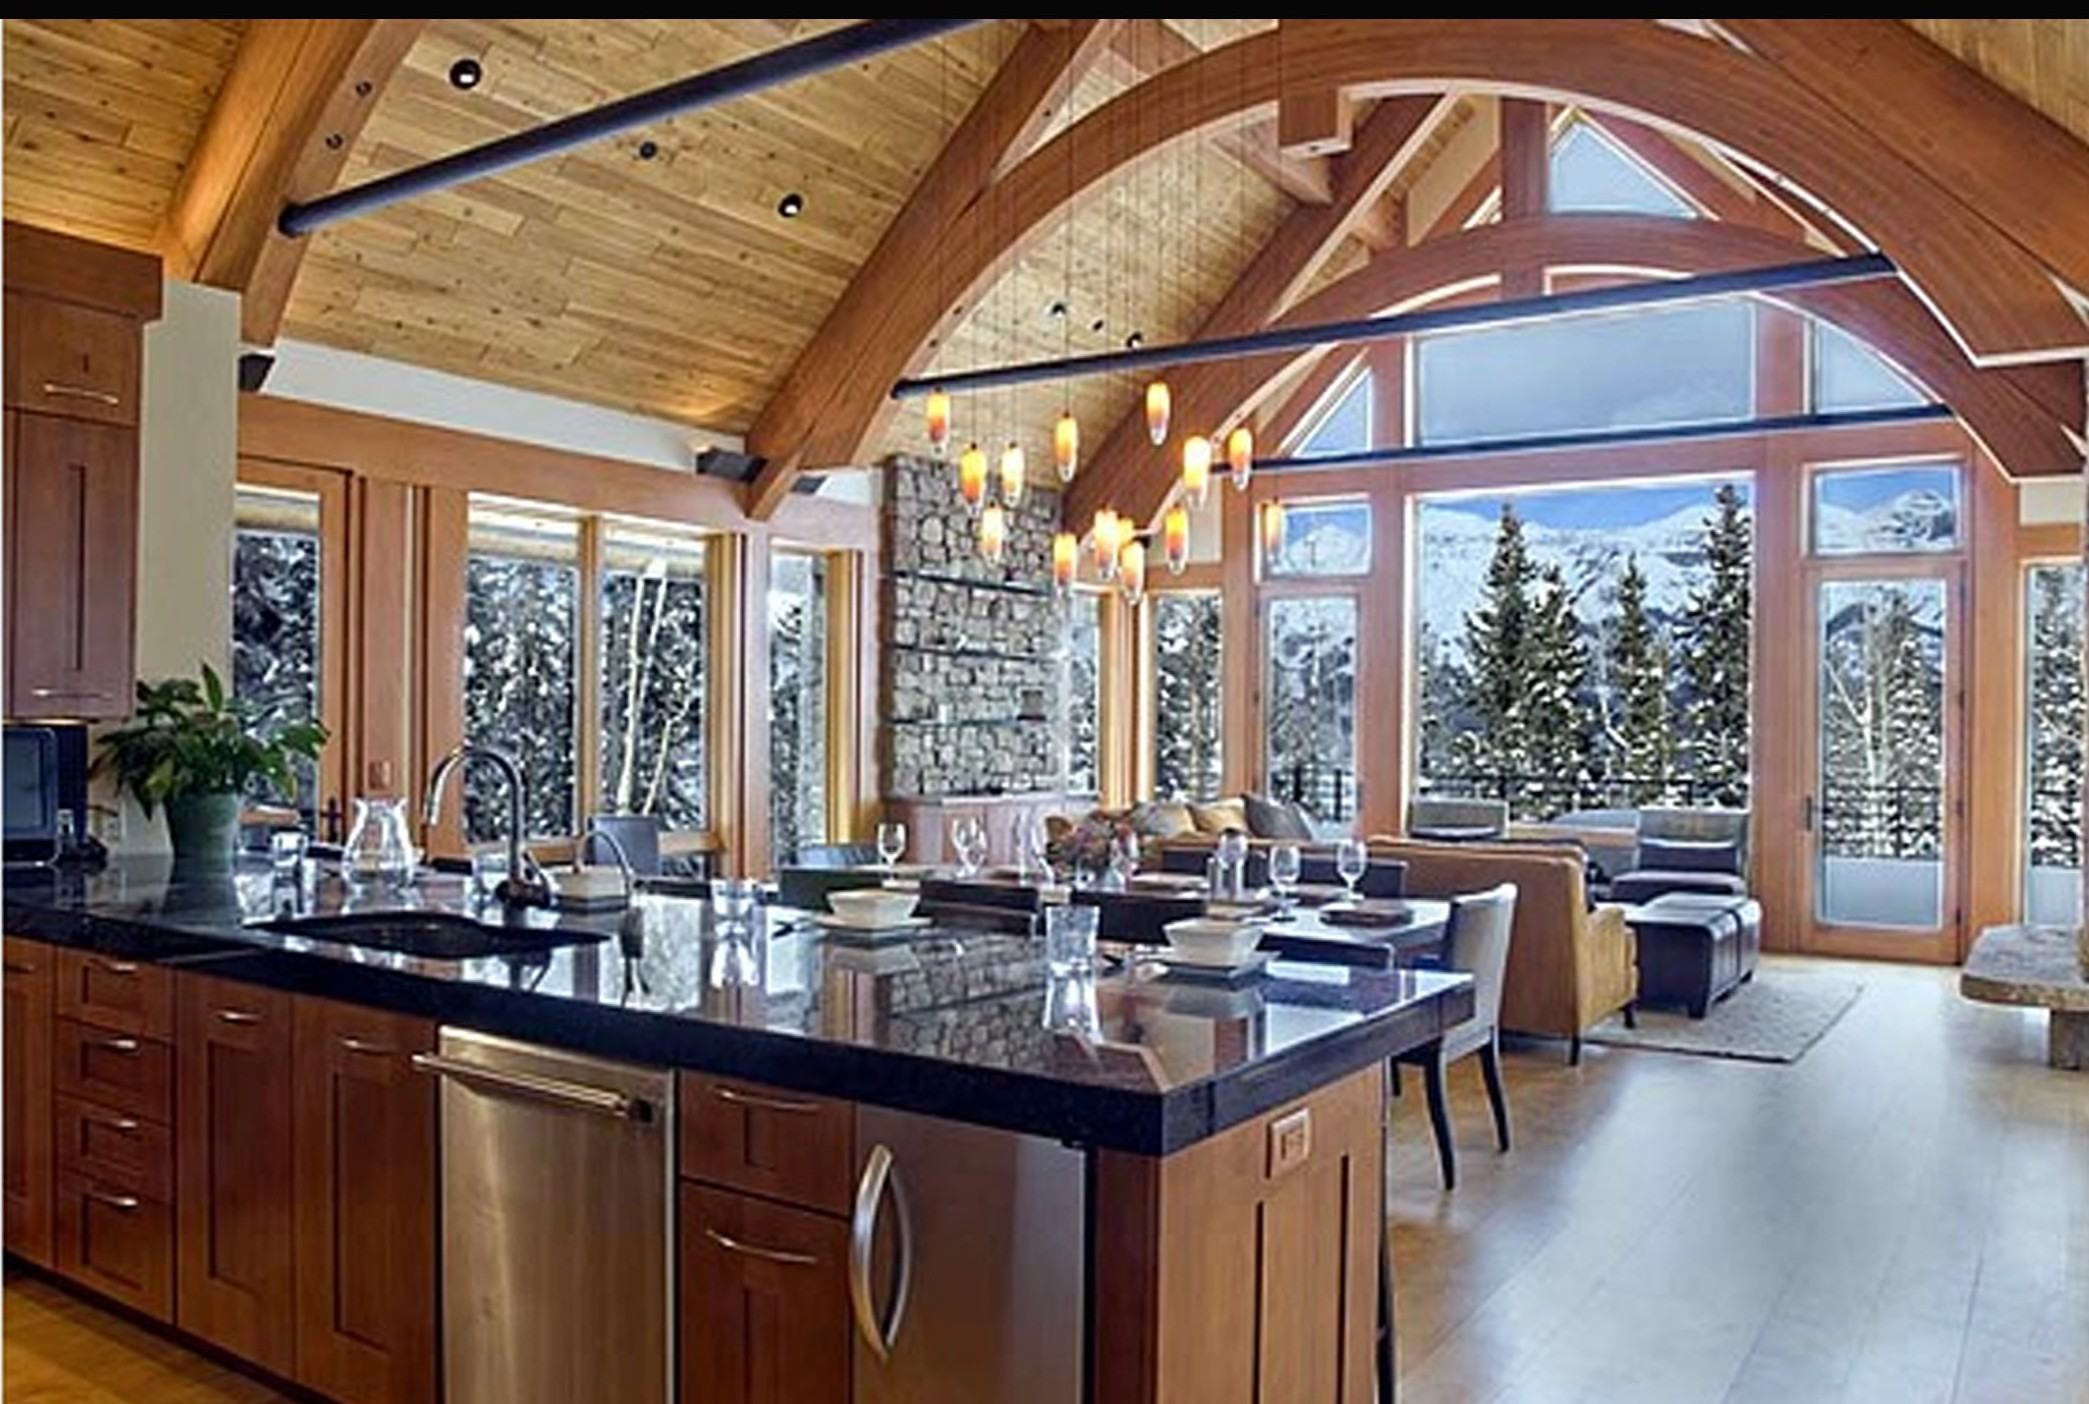 6 dream kitchens for holiday cooking and entertaining - Images of kitchens ...